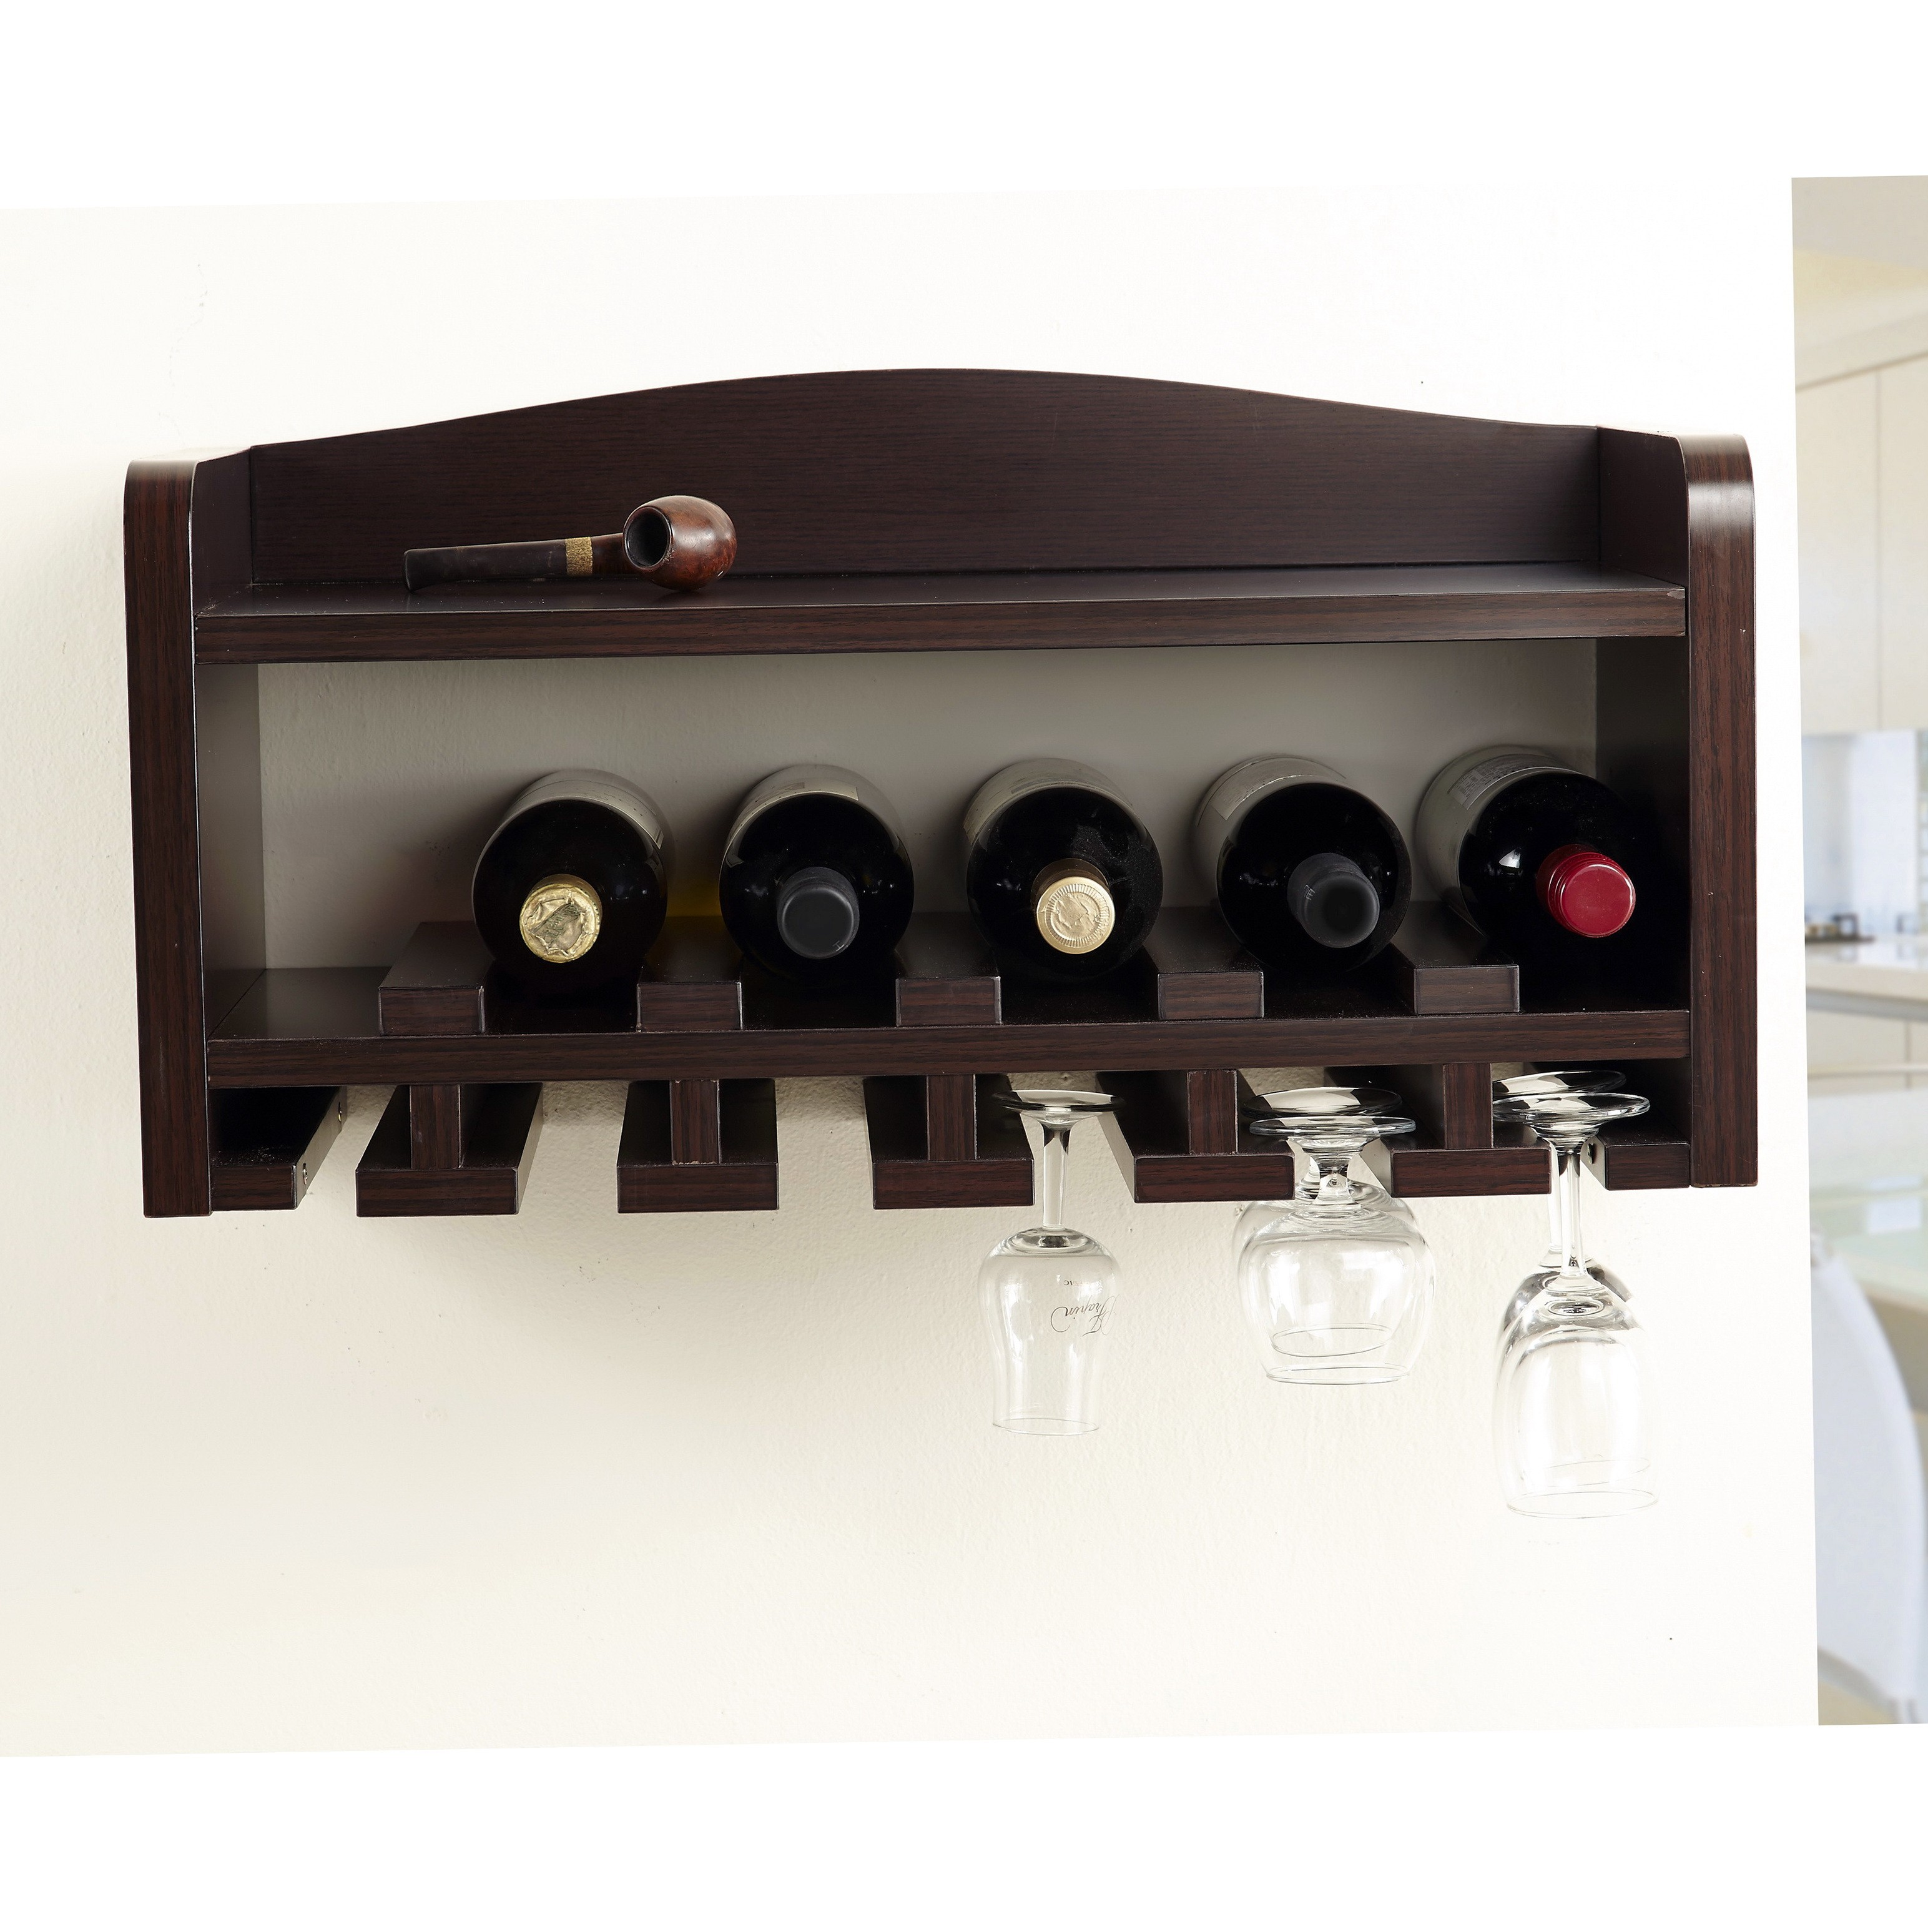 wall mounted wine glass holder  homesfeed - dark brown wooden wine racks and glass holder